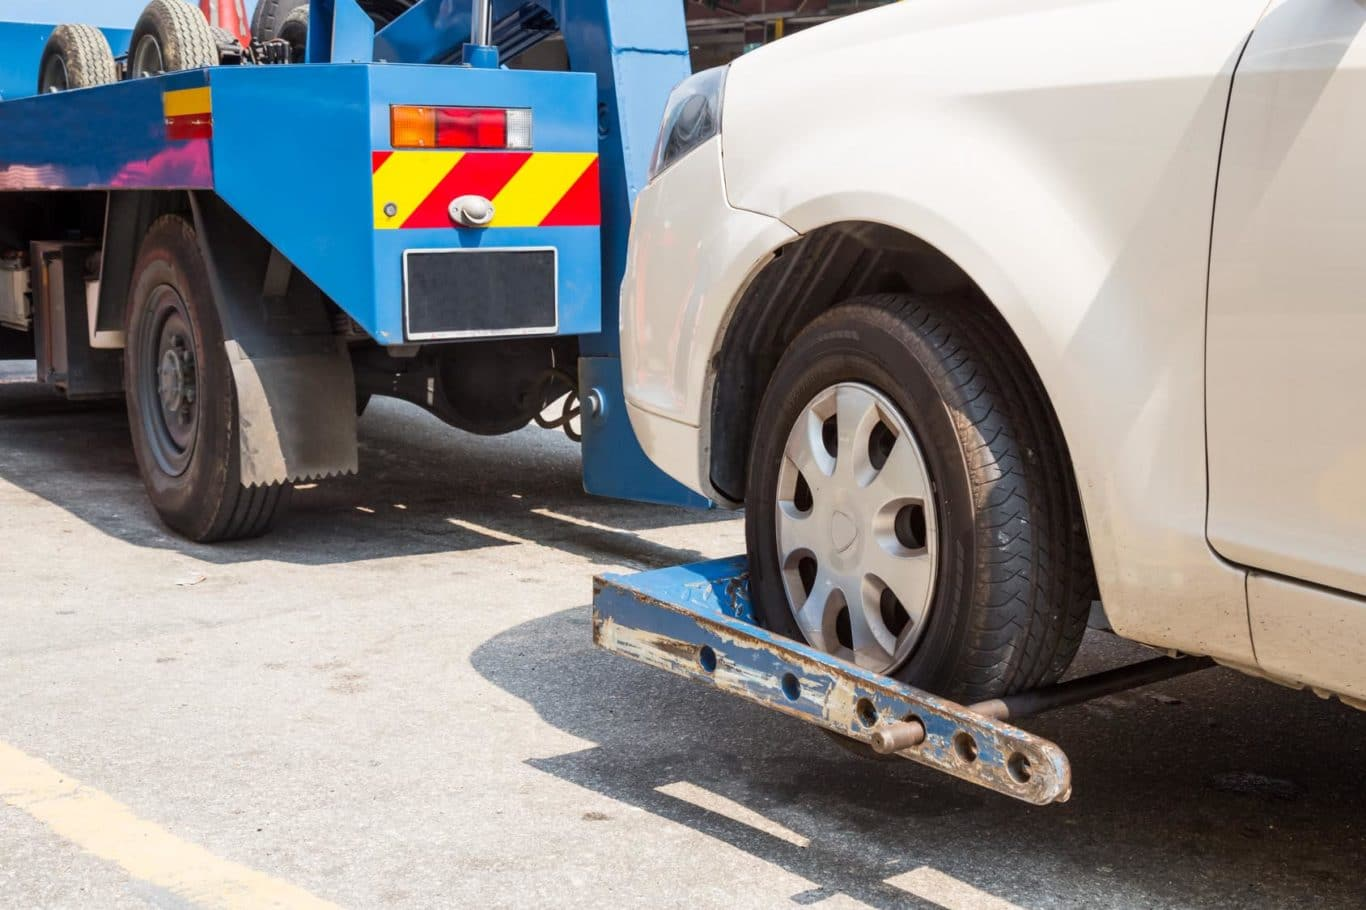 Lullymore expert Roadside Assistance services